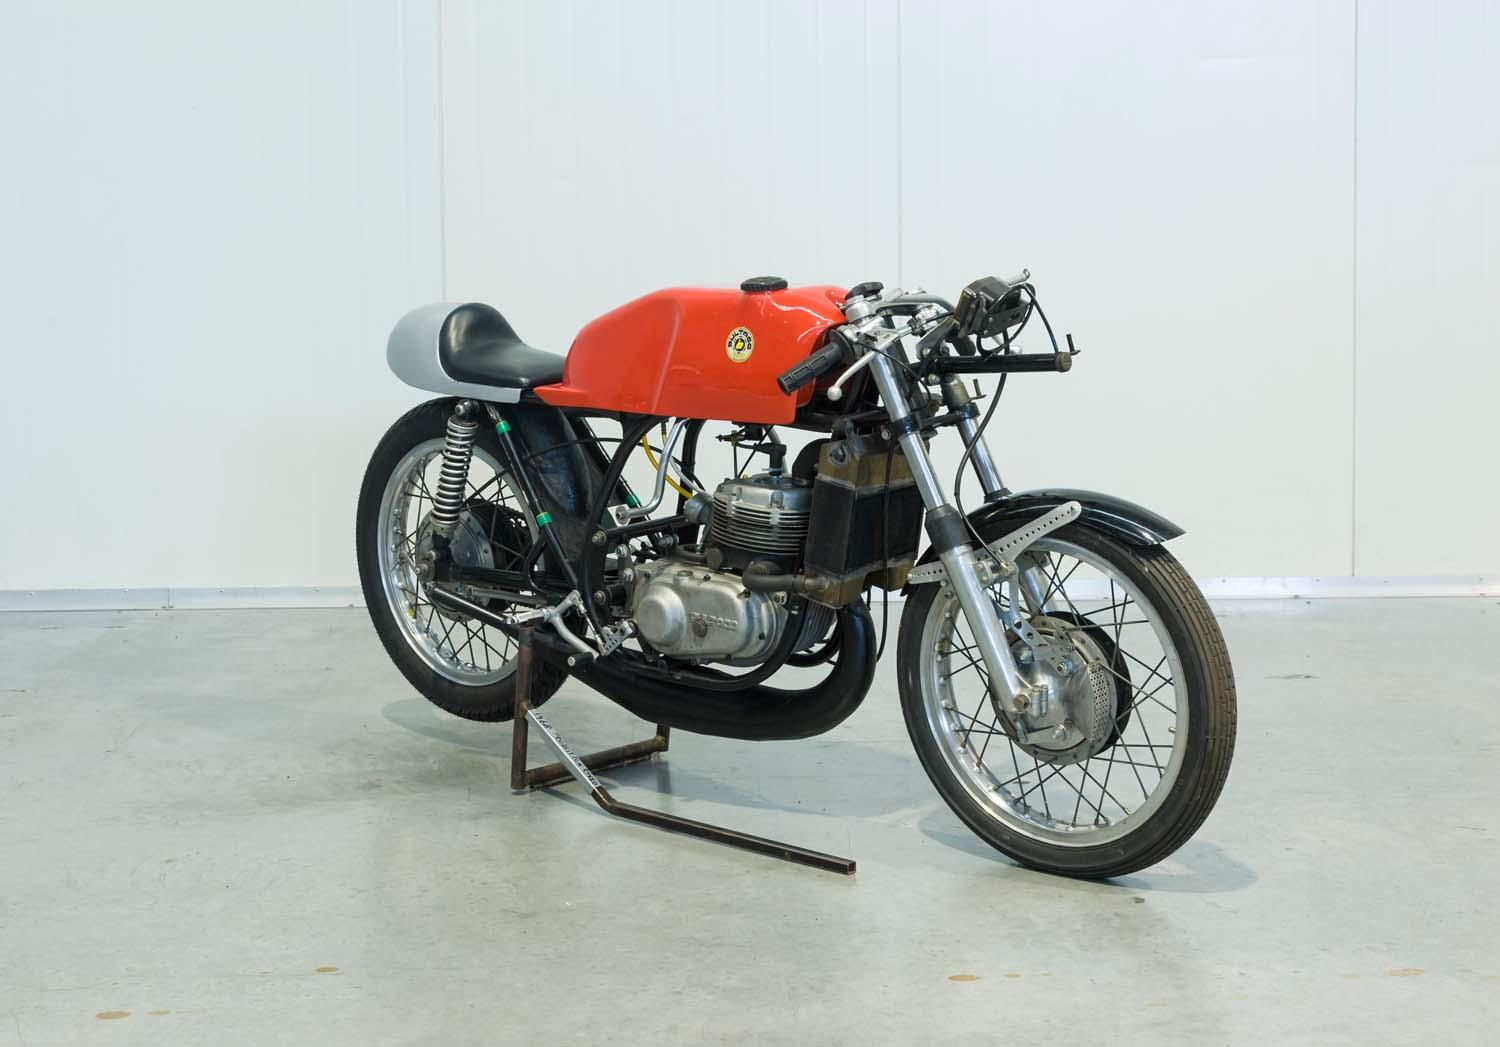 1968 BULTACO TSS 250CC 6-SPEED WATER COOLED PRODUCTION RACER